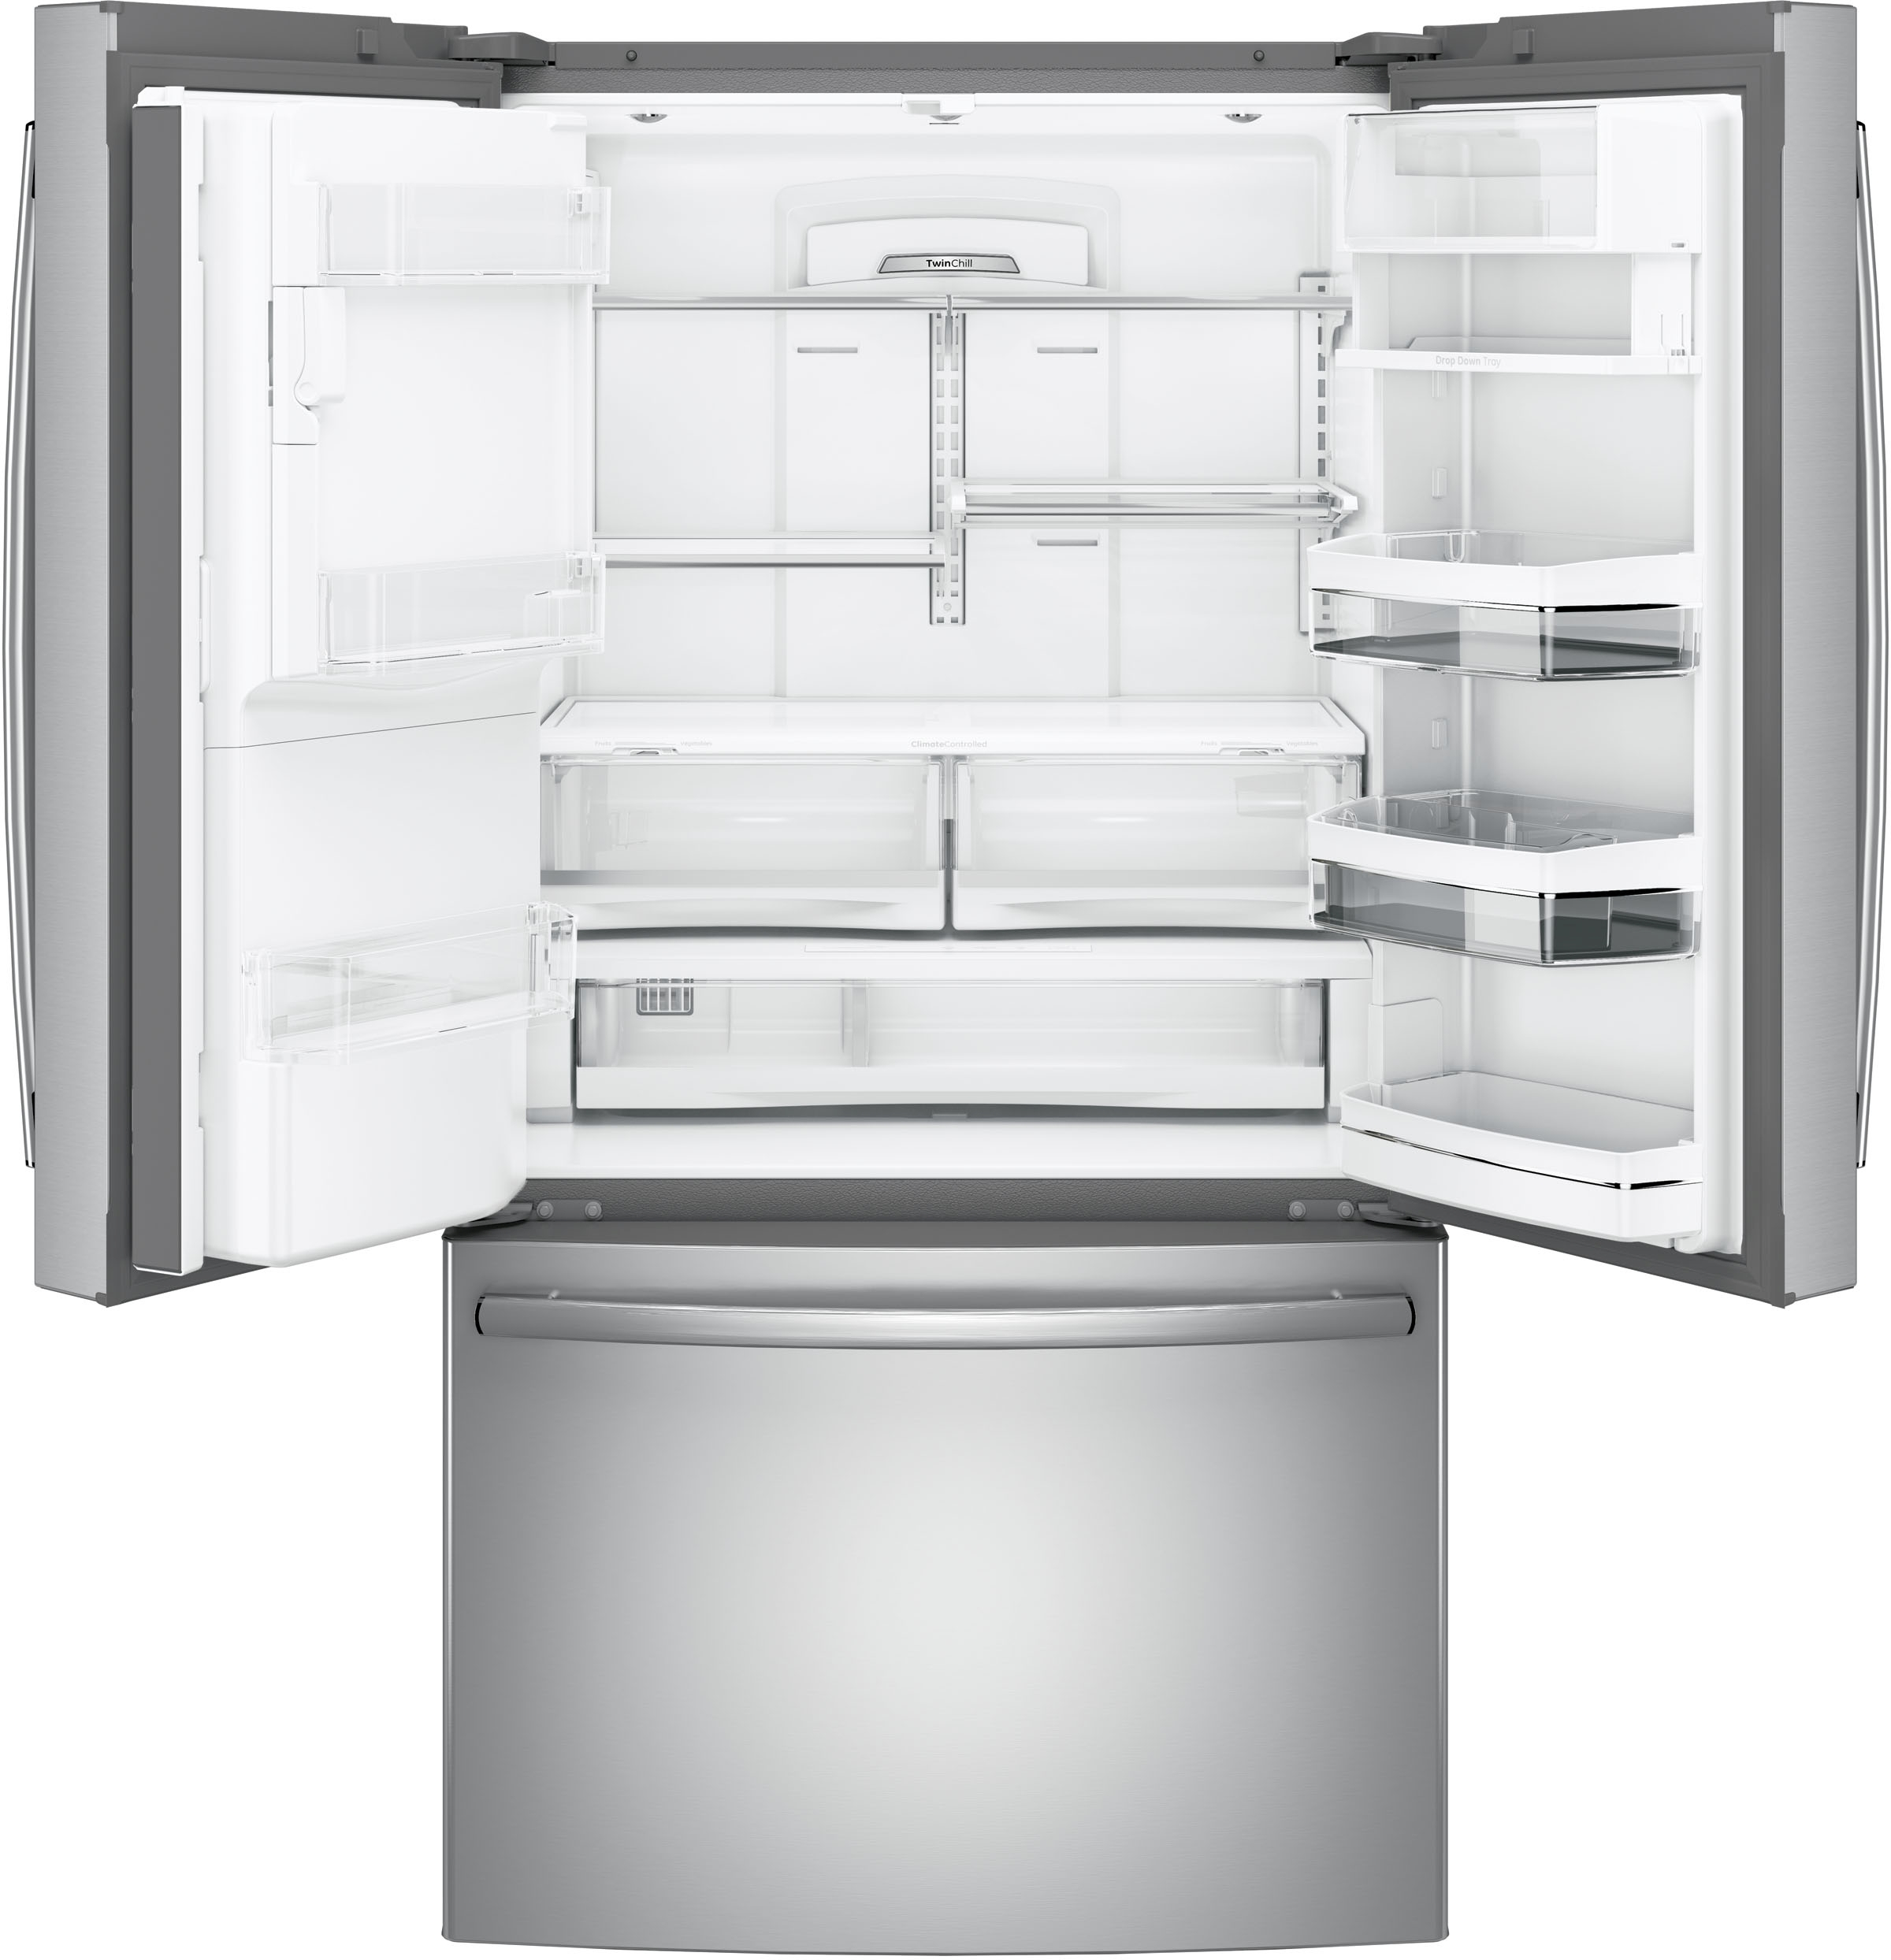 Ge Profile 22 23 Cu Ft Stainless Steel Counter Depth